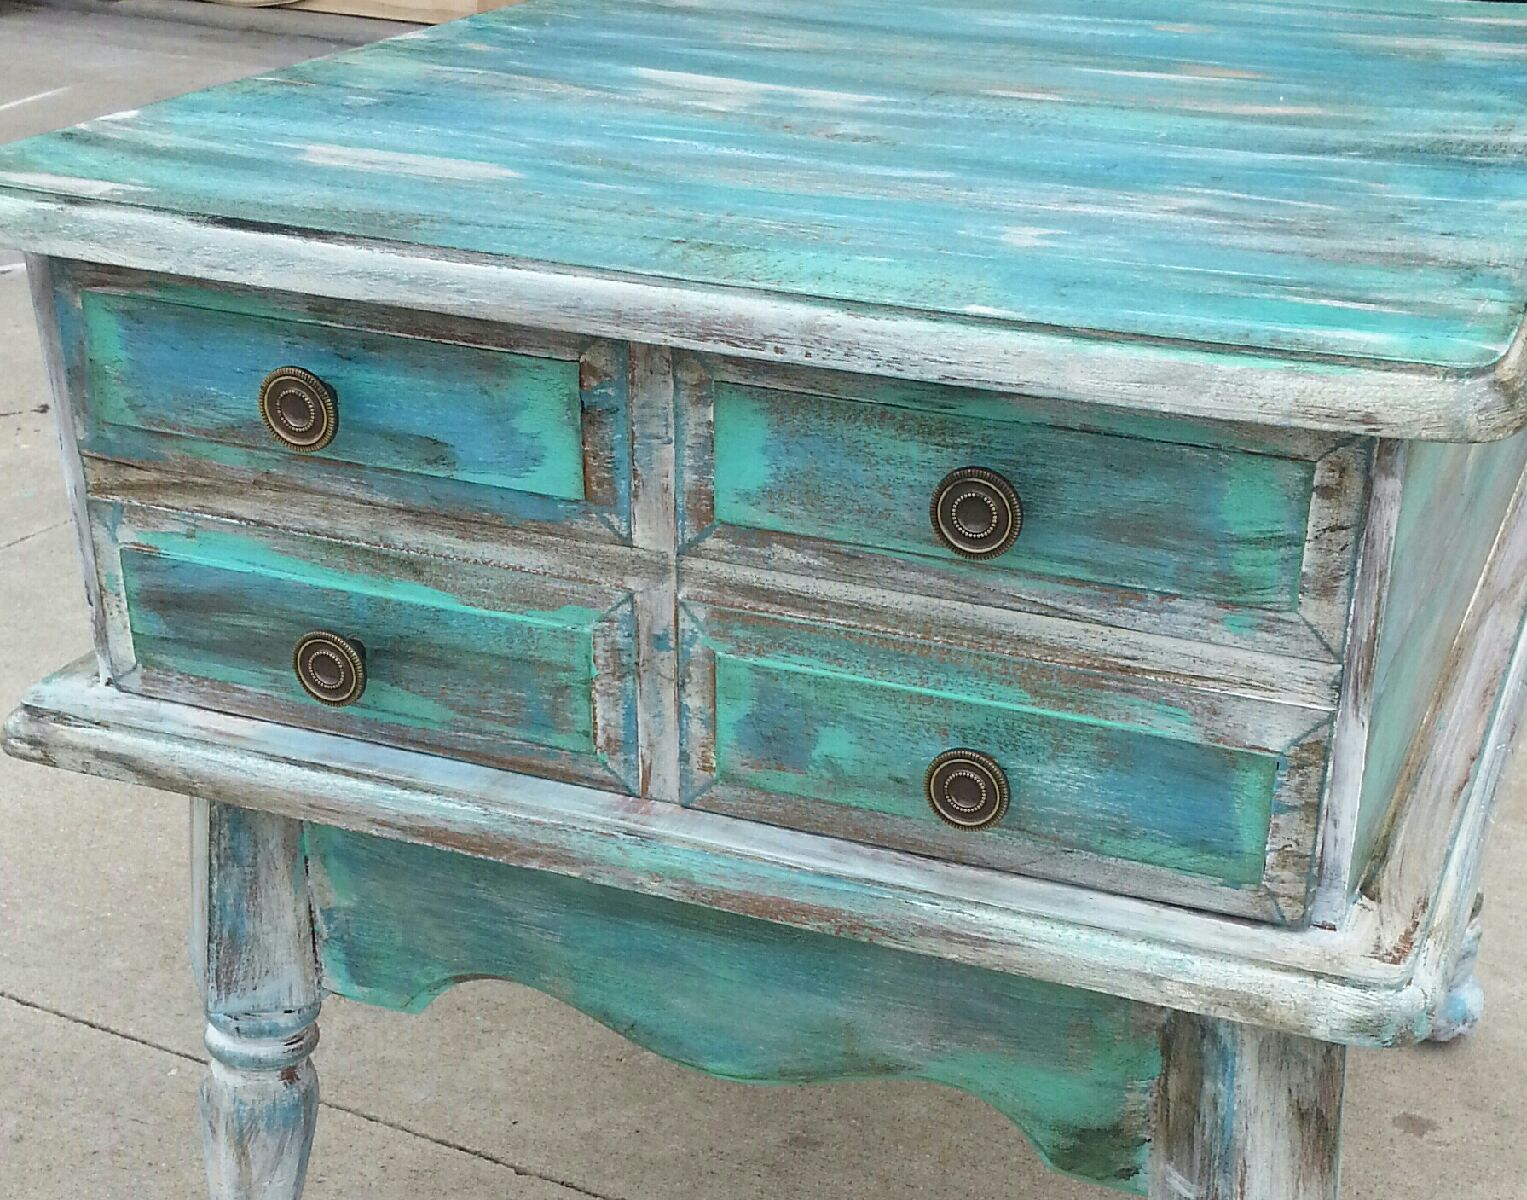 20130408 162809 1 1 Jpg 1527 1200 Blue Distressed Furniture Red Distressed Furniture Distressed Furniture